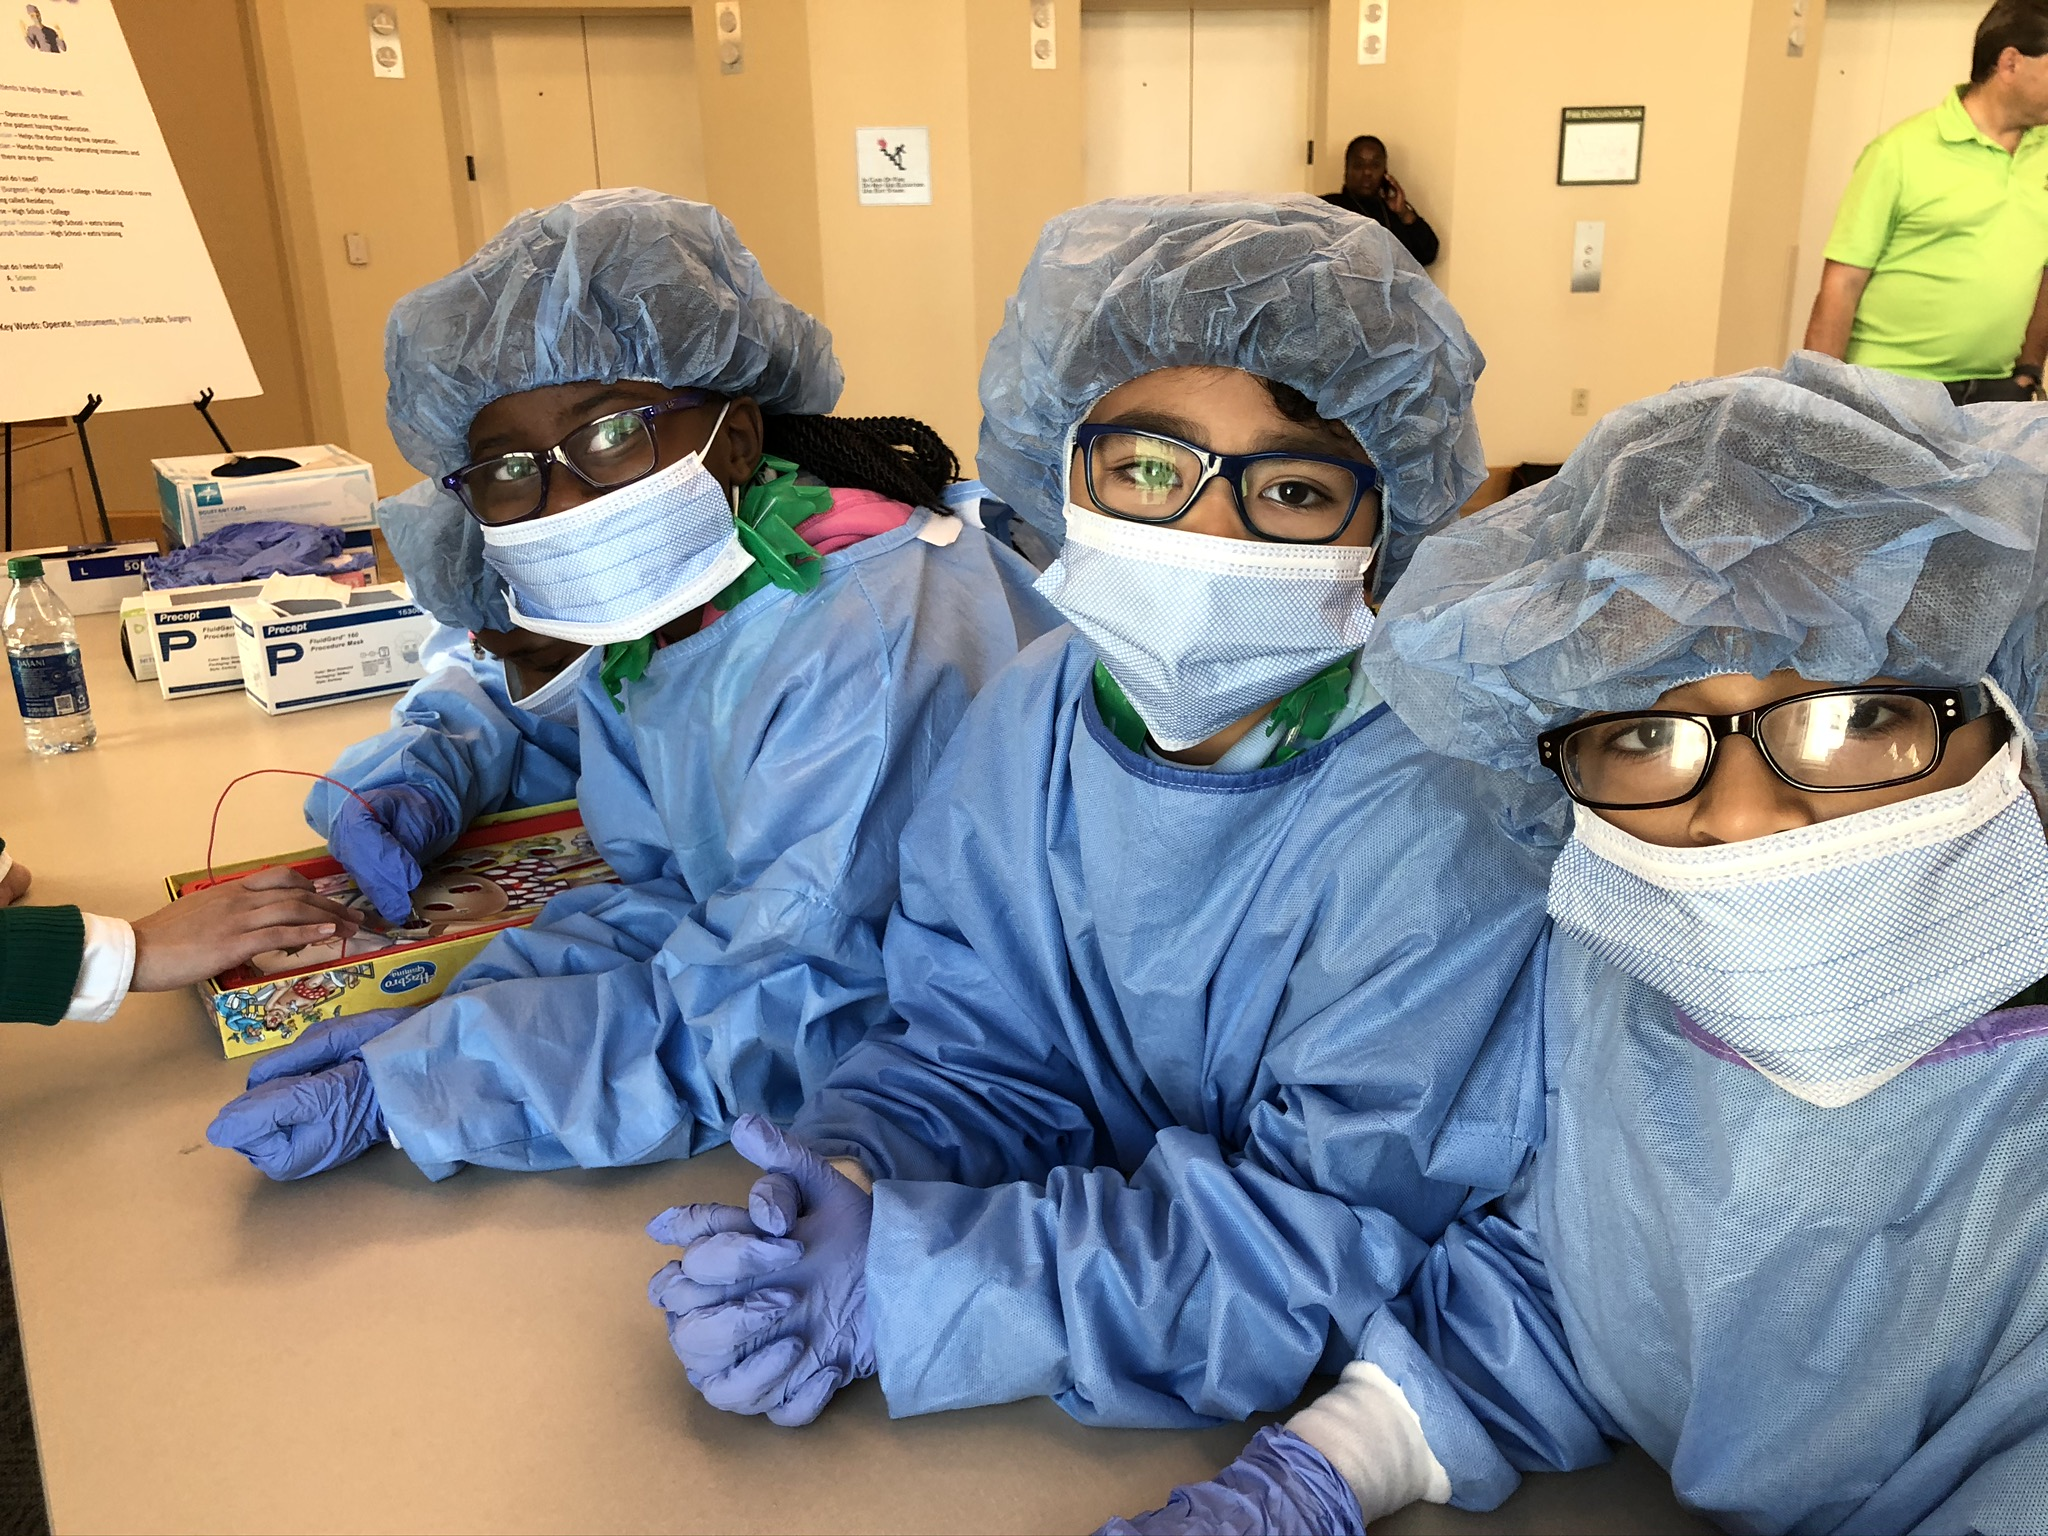 Photo of students from a medical pipeline field trip.